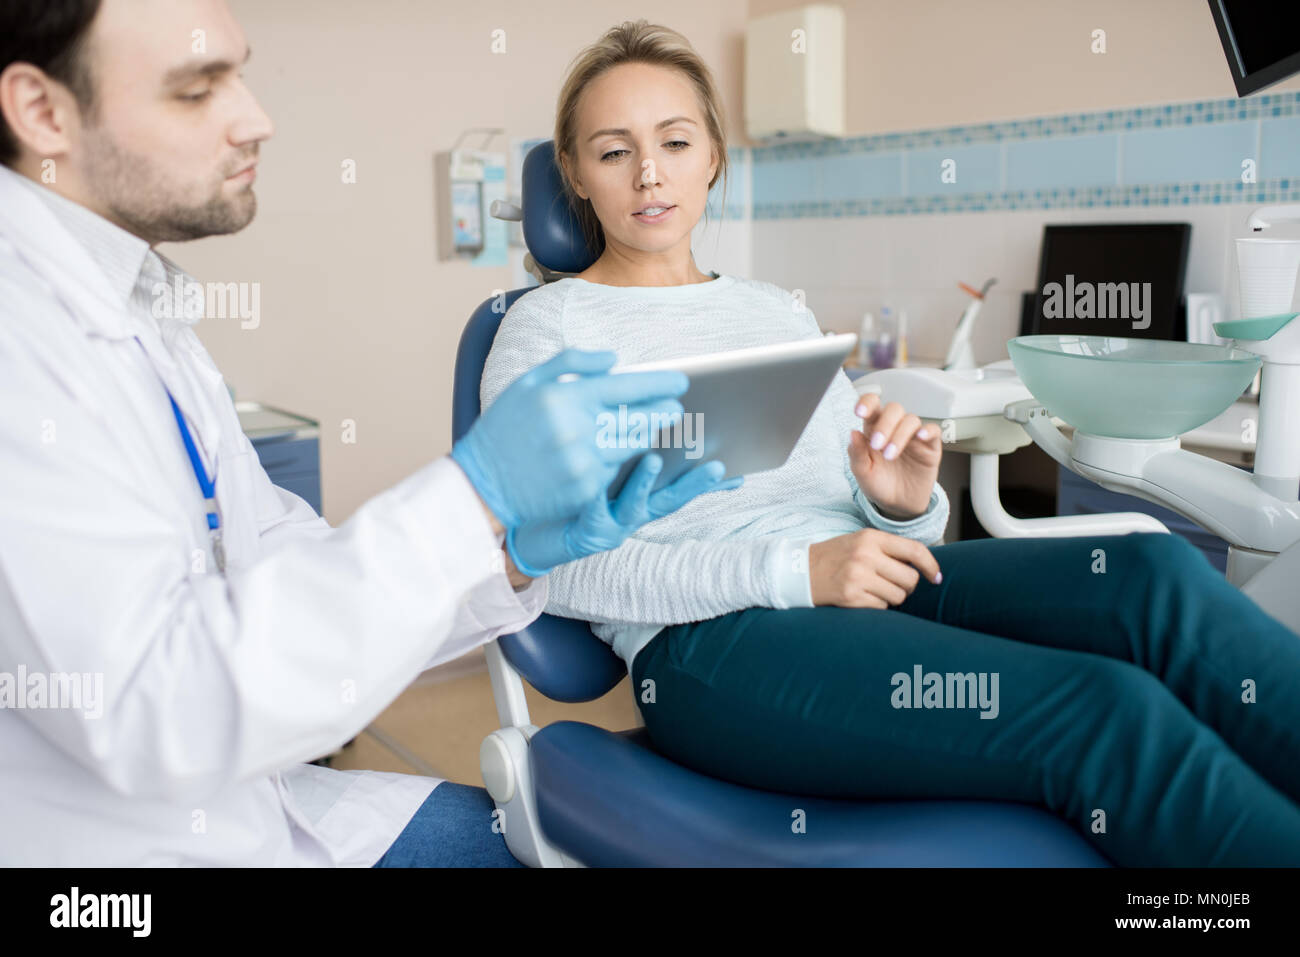 Man in white apparel showing tablet to young client sitting in chair in dentist cabinet. - Stock Image